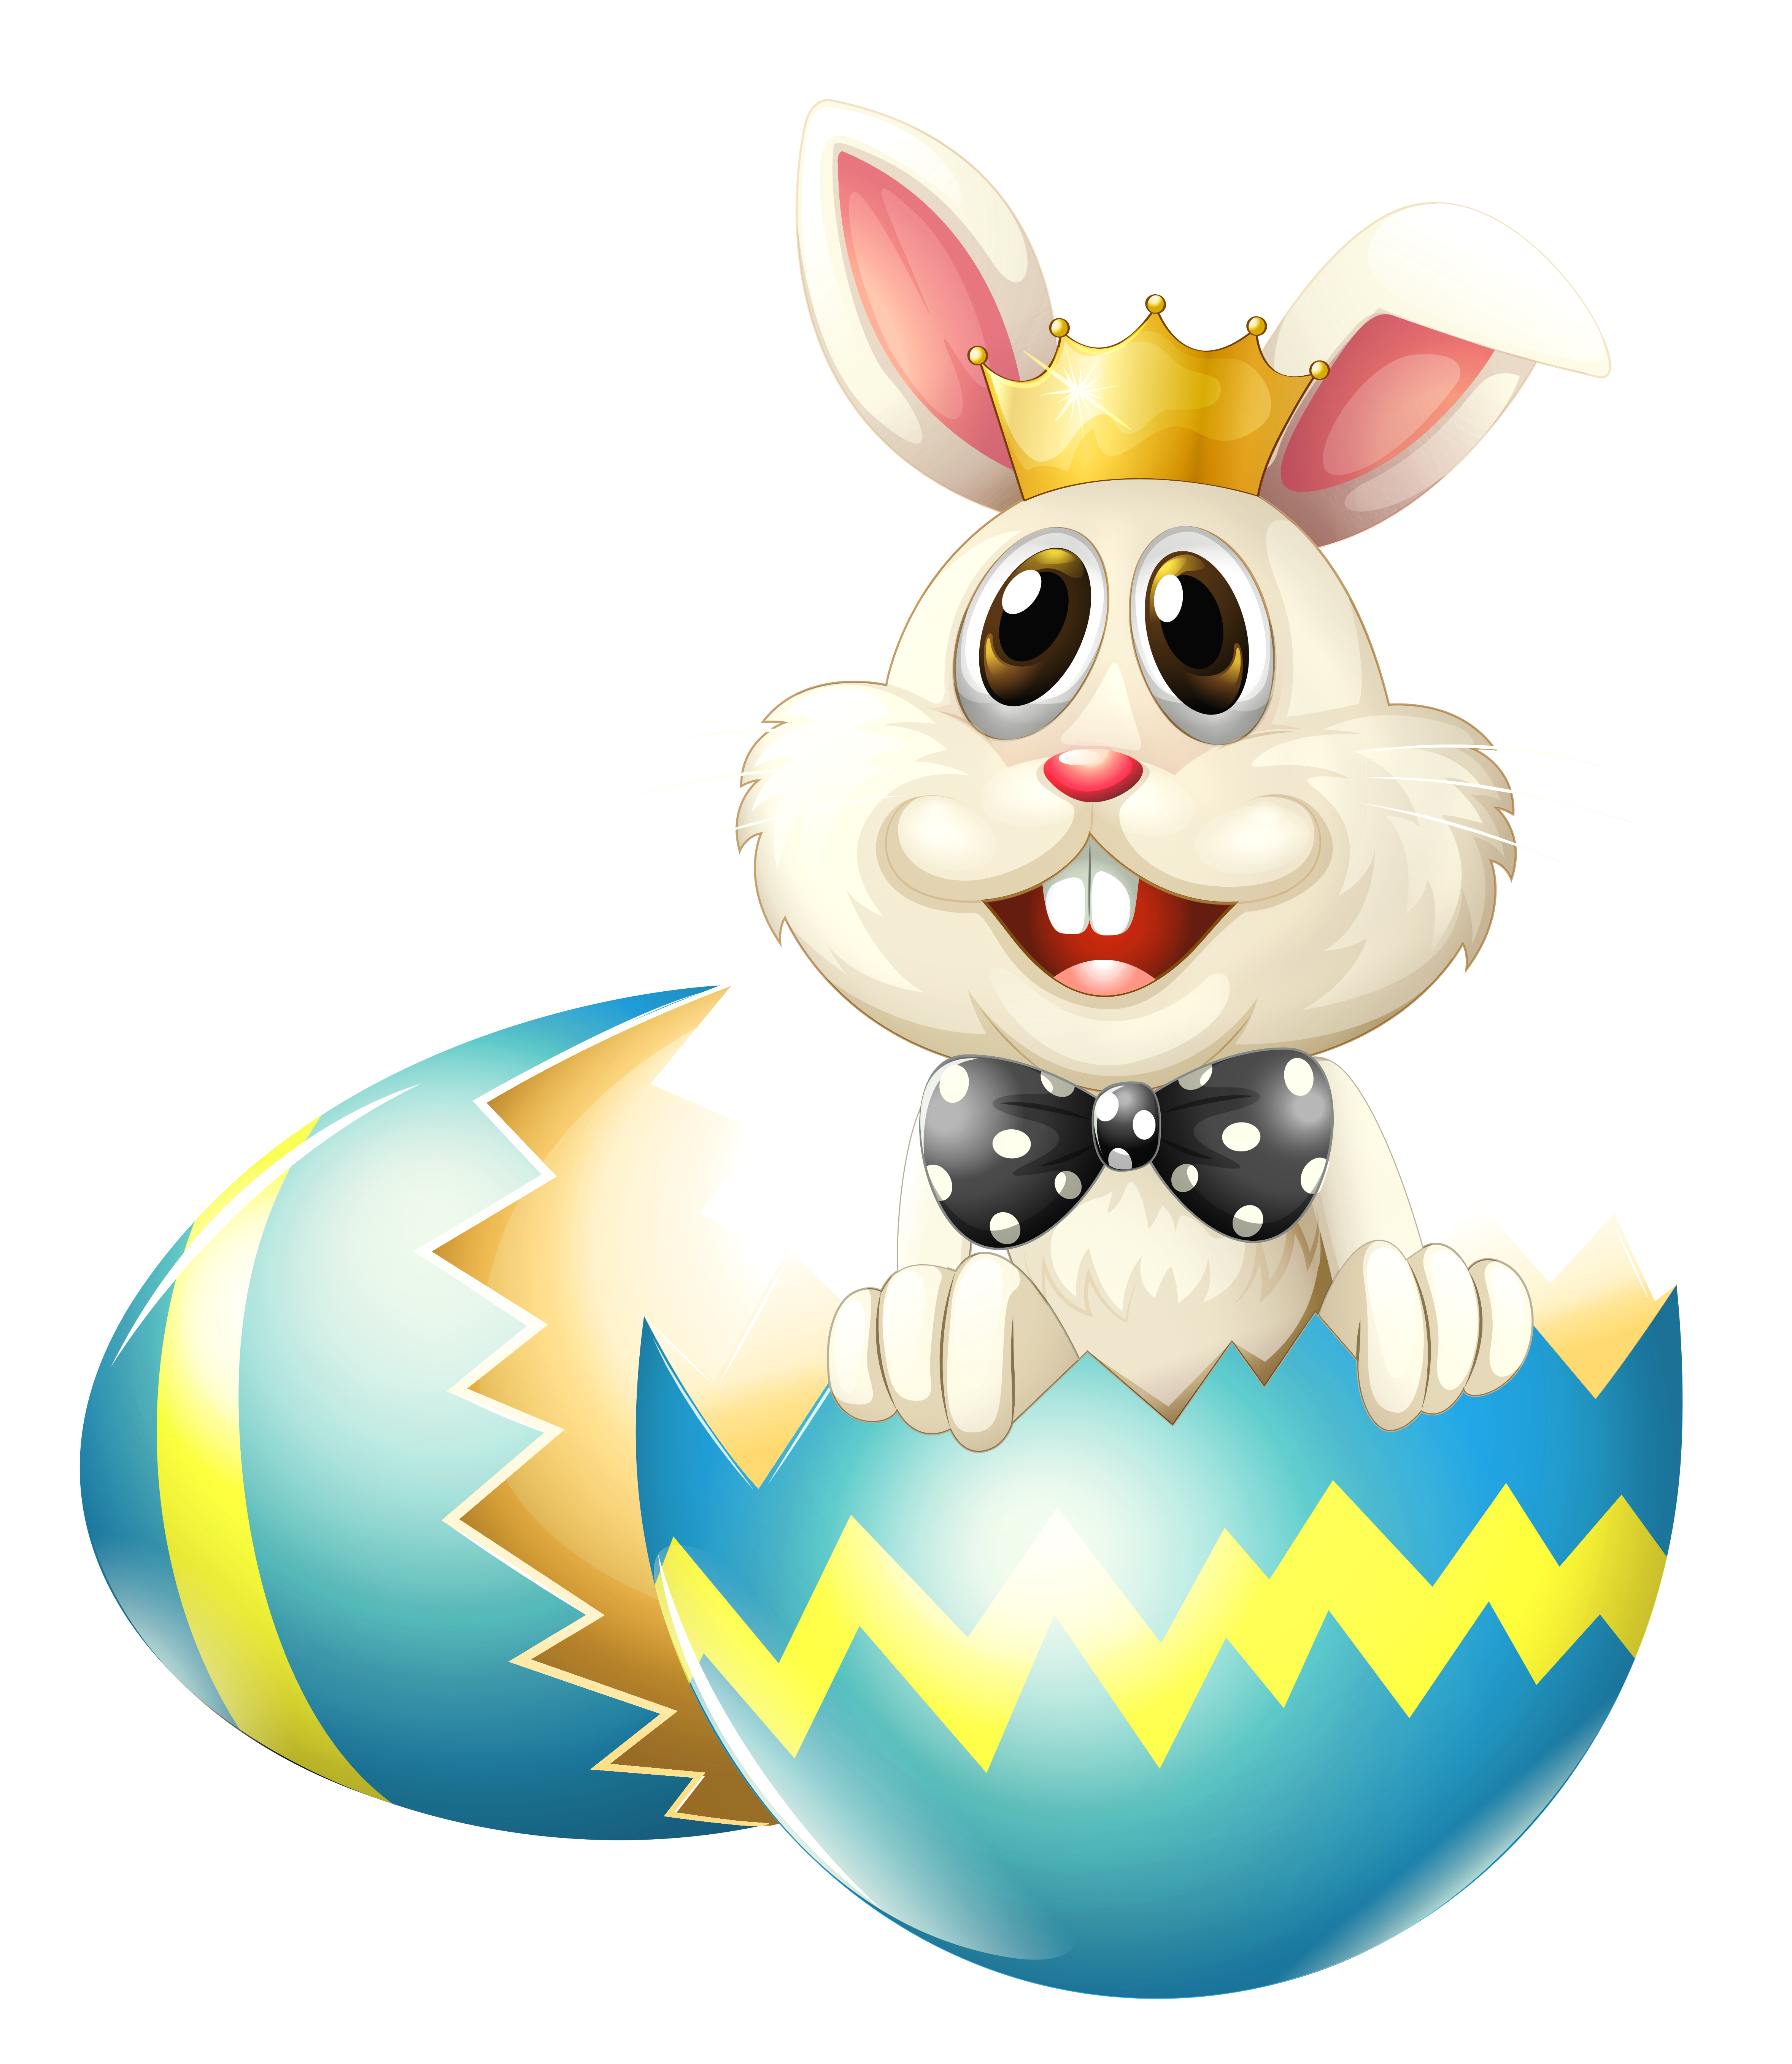 Similar Easter Bunny PNG Image - Easter HD PNG